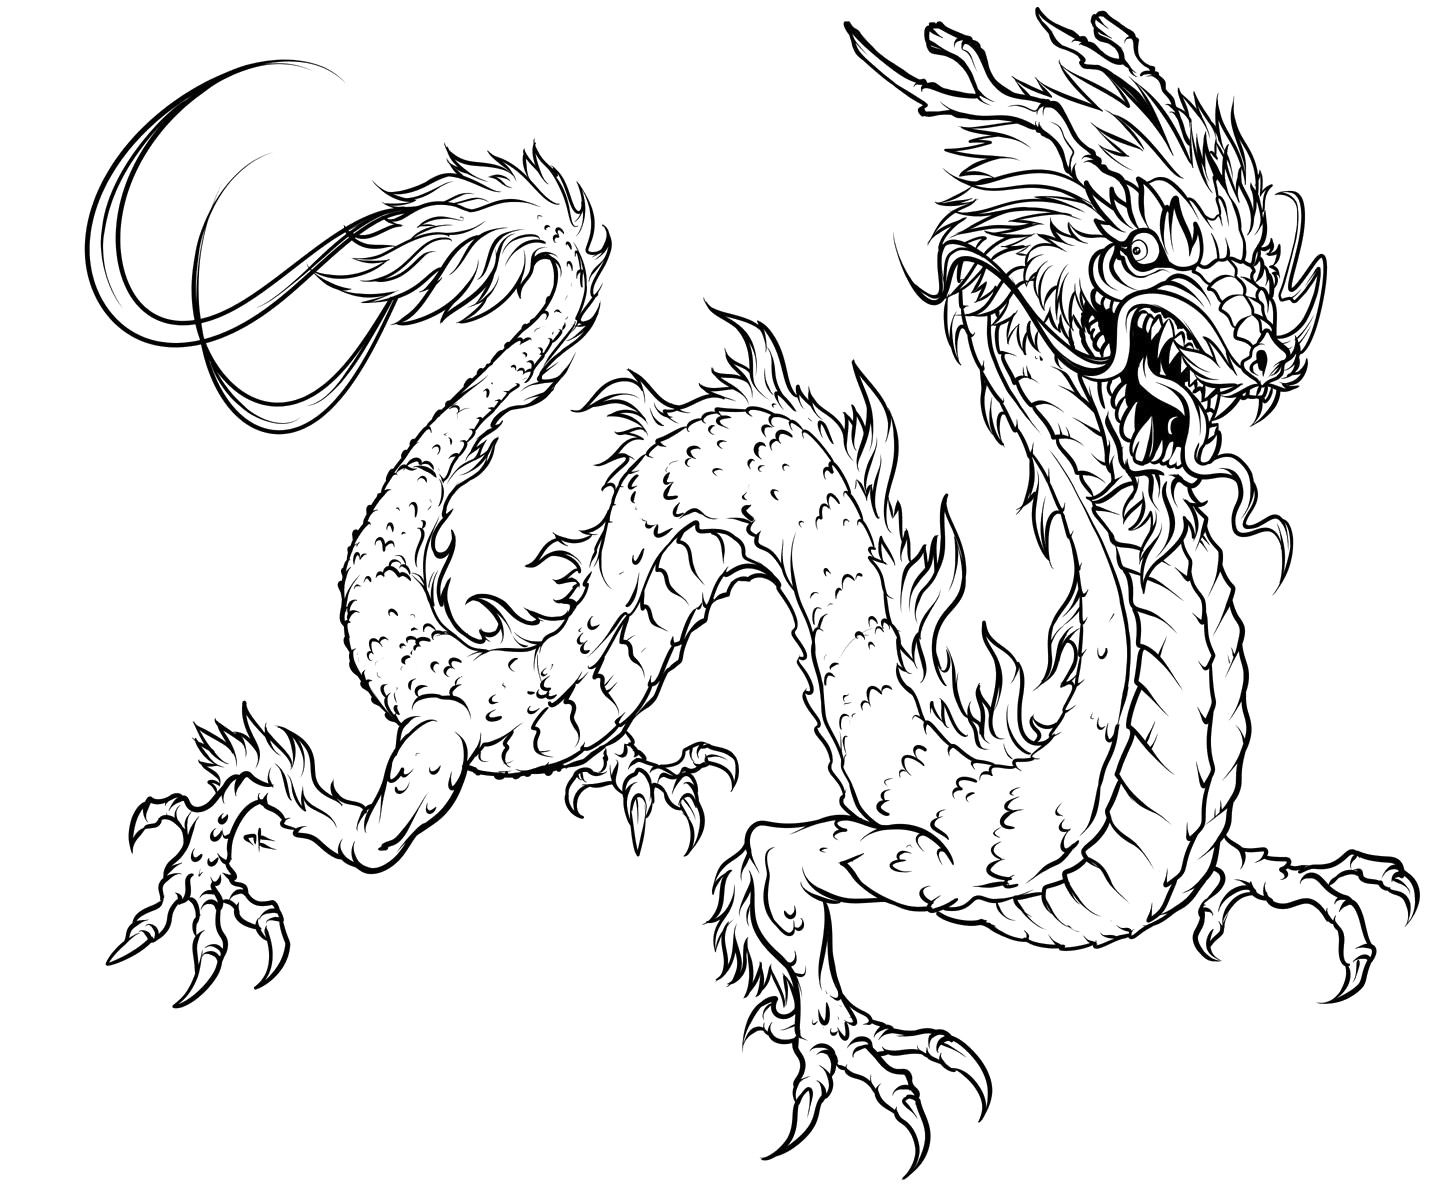 The Ancestors Of The Dragons Coloring Pages | Fantasia | Pinterest